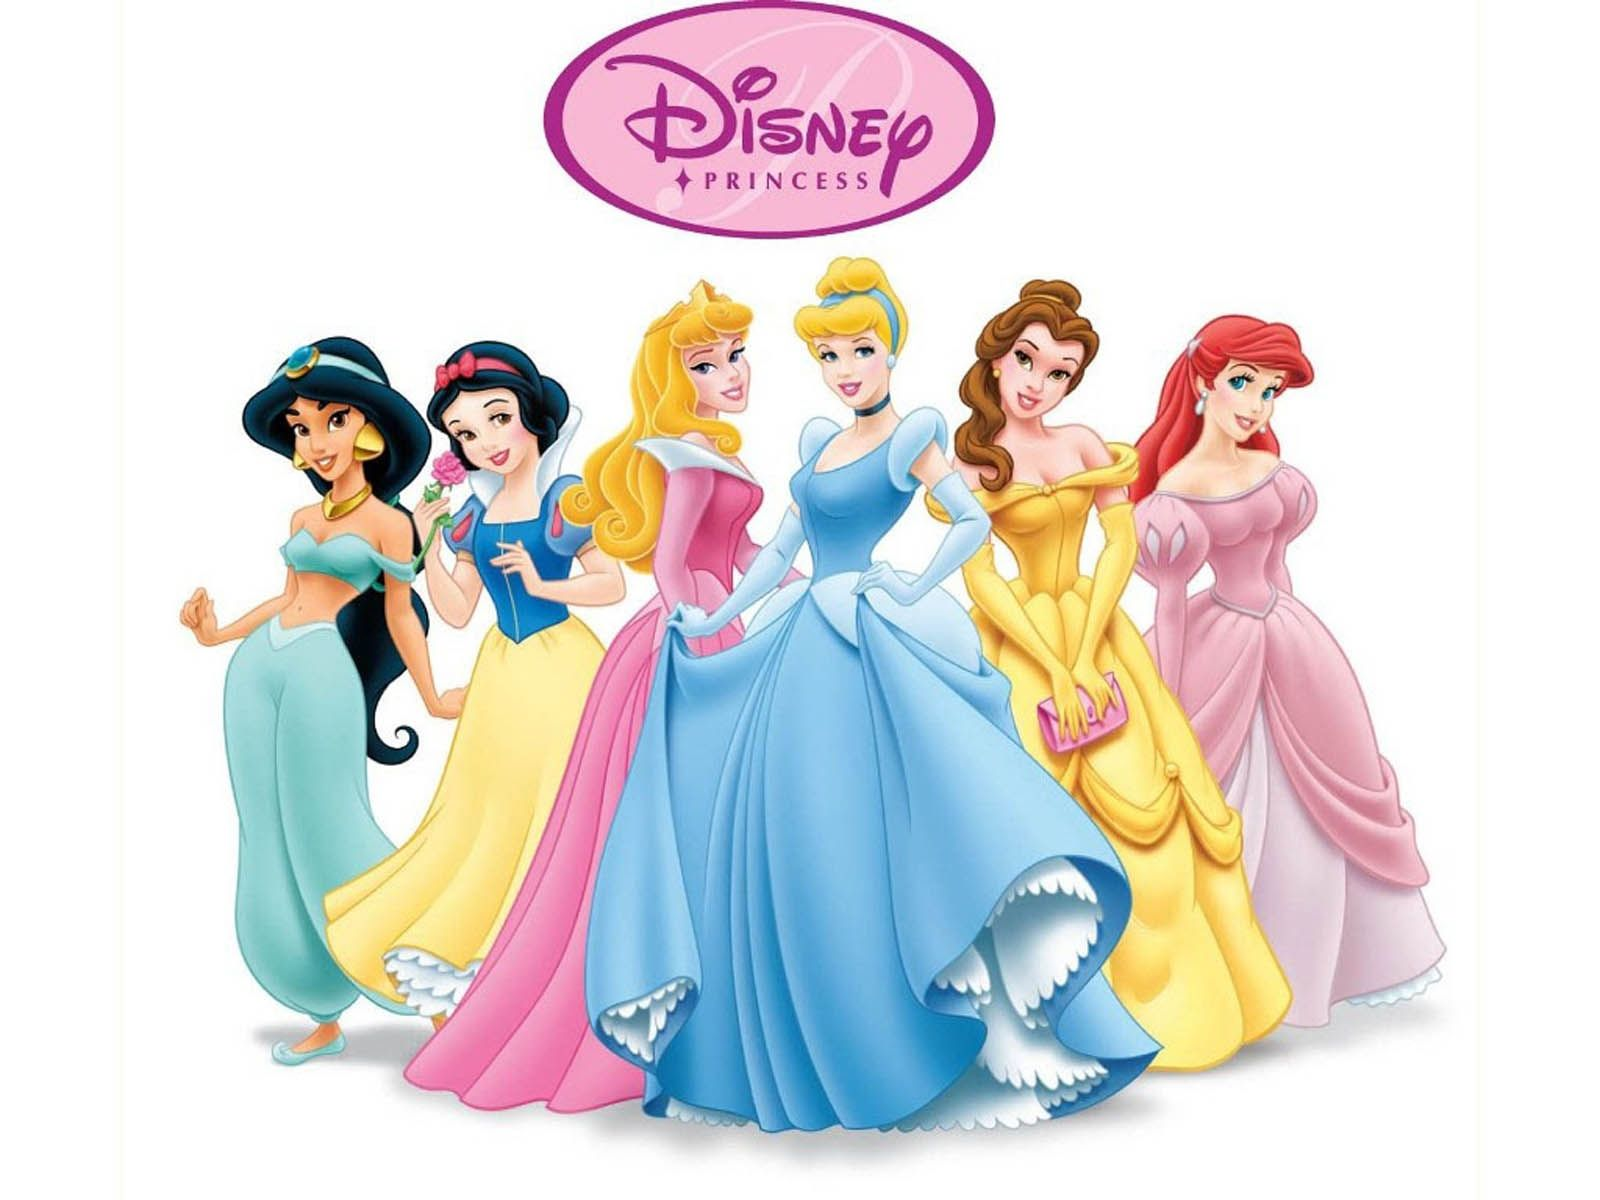 Collection Of Disney Princess Wallpapers On Hdwallpapers 1024 768 Wallpaper Princess Disney Princess Wallpaper Disney Princess Pictures Disney Princess Images